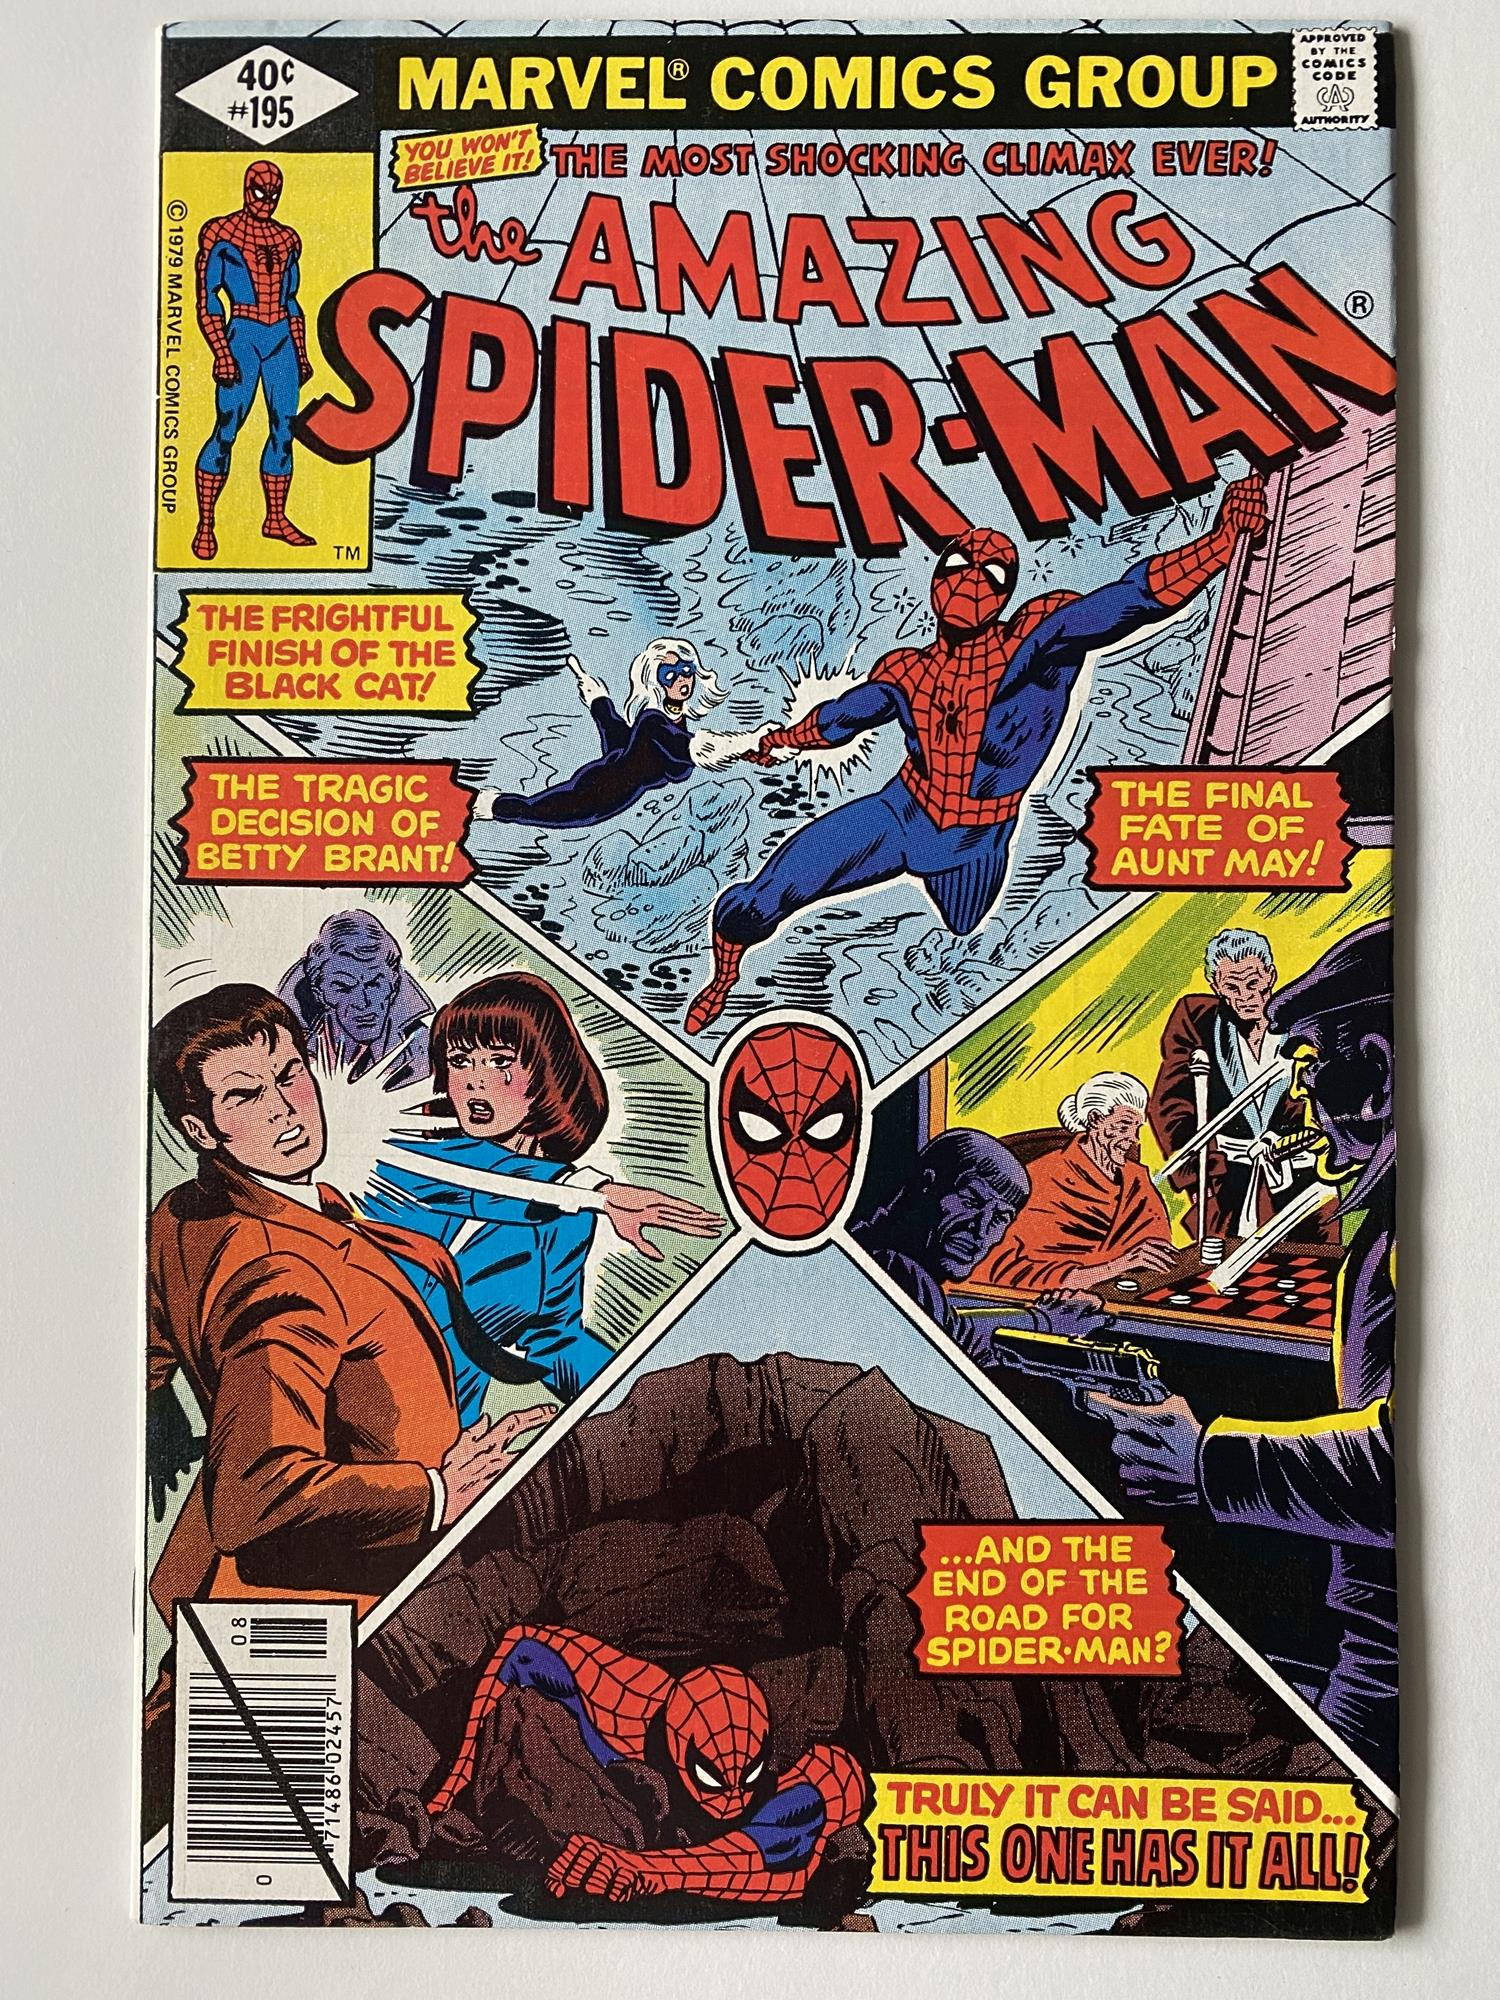 Lot 23 - AMAZING SPIDER-MAN # 195 (1979 - MARVEL - Cents Copy) - Origin and second appearance of the Black